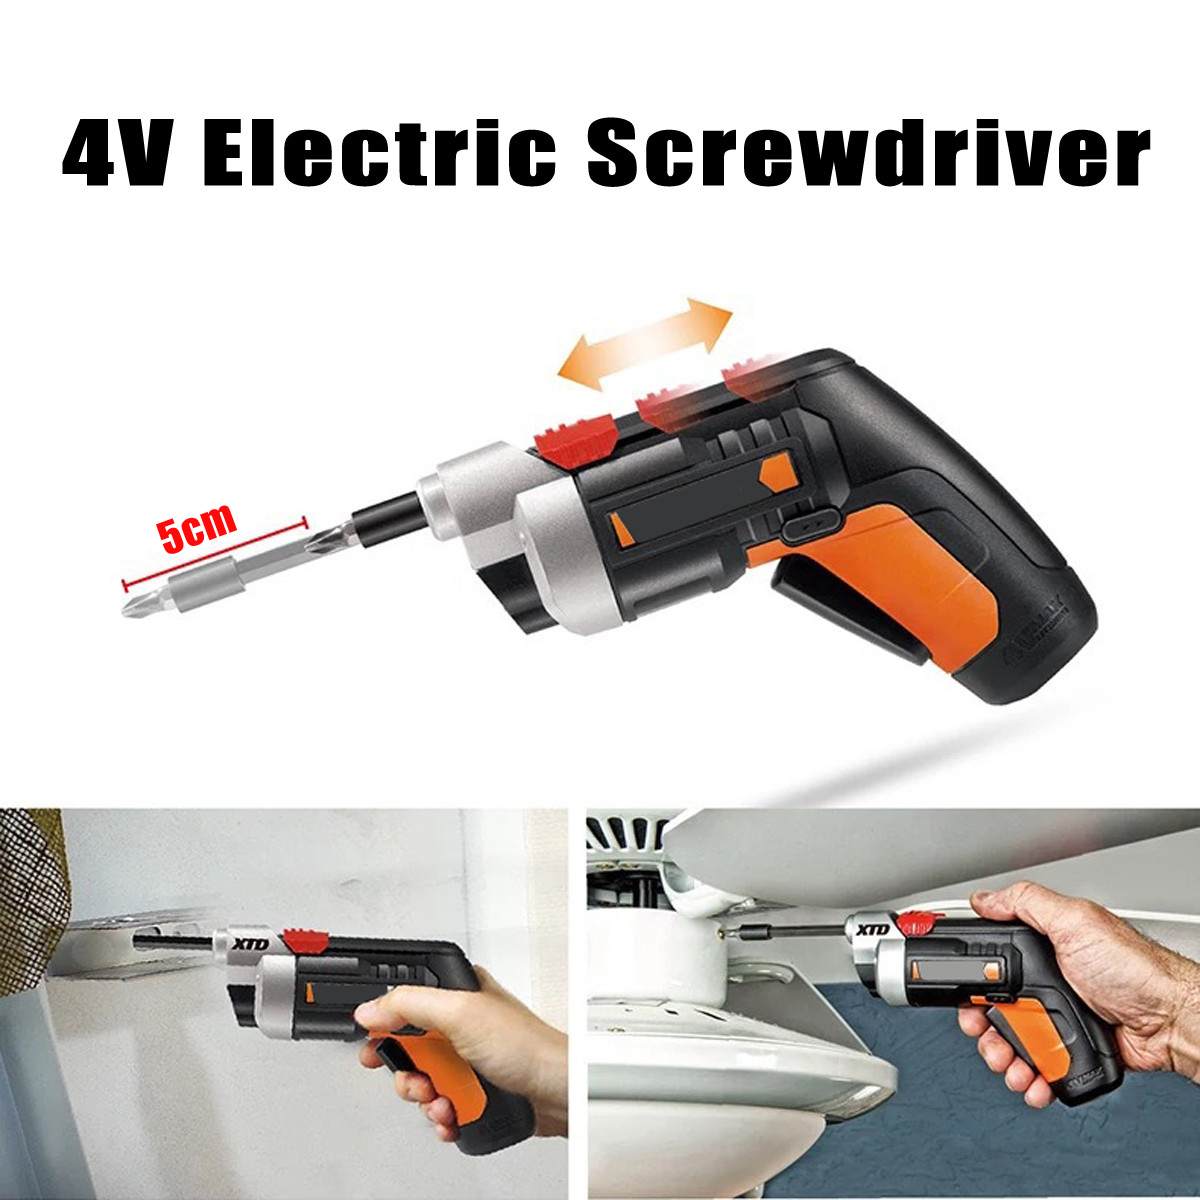 4V 1500mAh Electric Screwdriver Lithium Battery Electric Drill WX252 Rechargeable 254 Electric Tools Household Power Tool цена